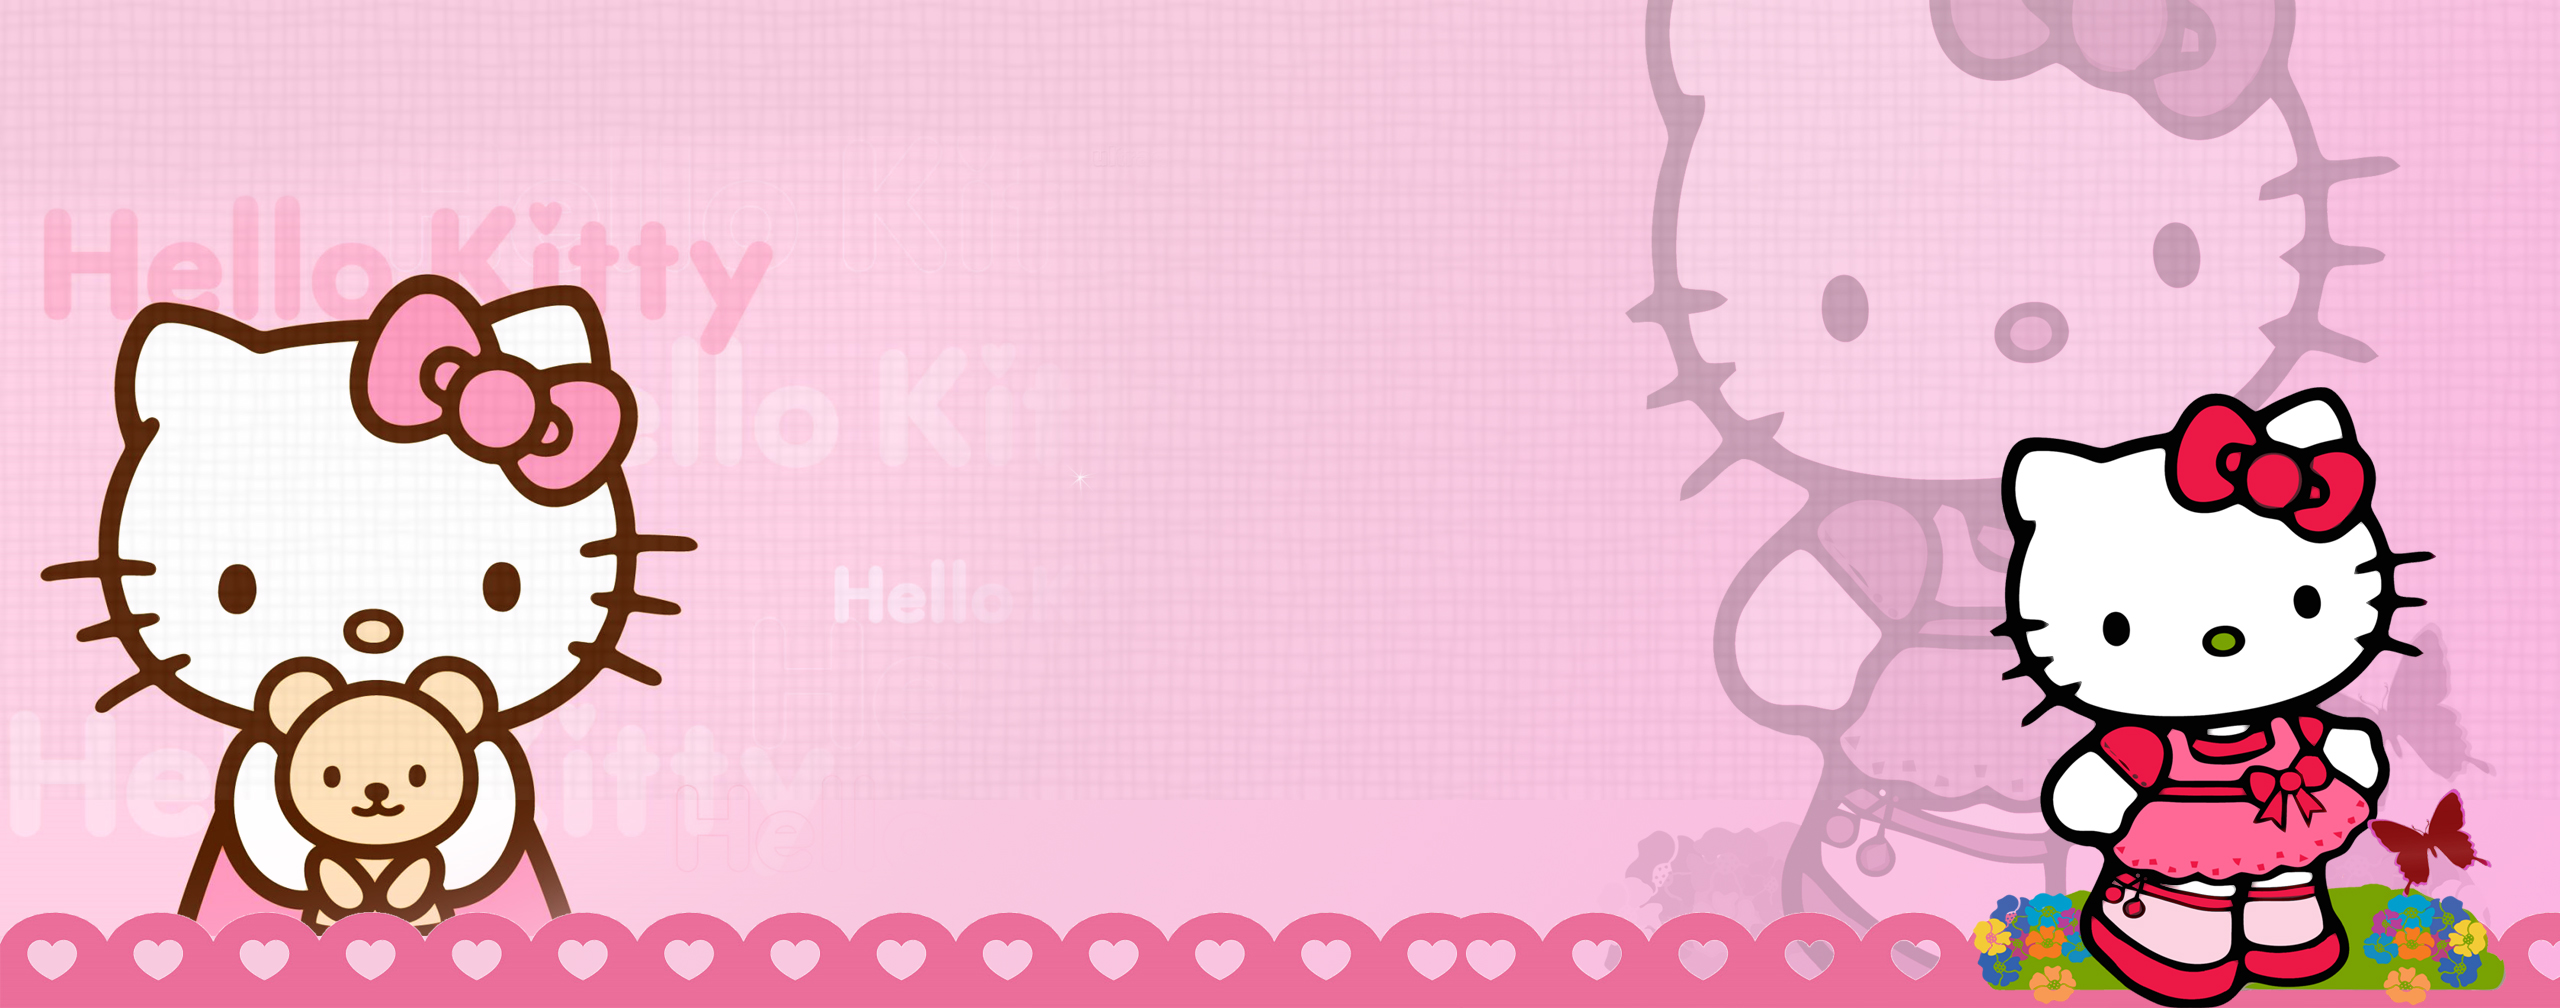 hello kitty wallpaper for facebook full hd pictures